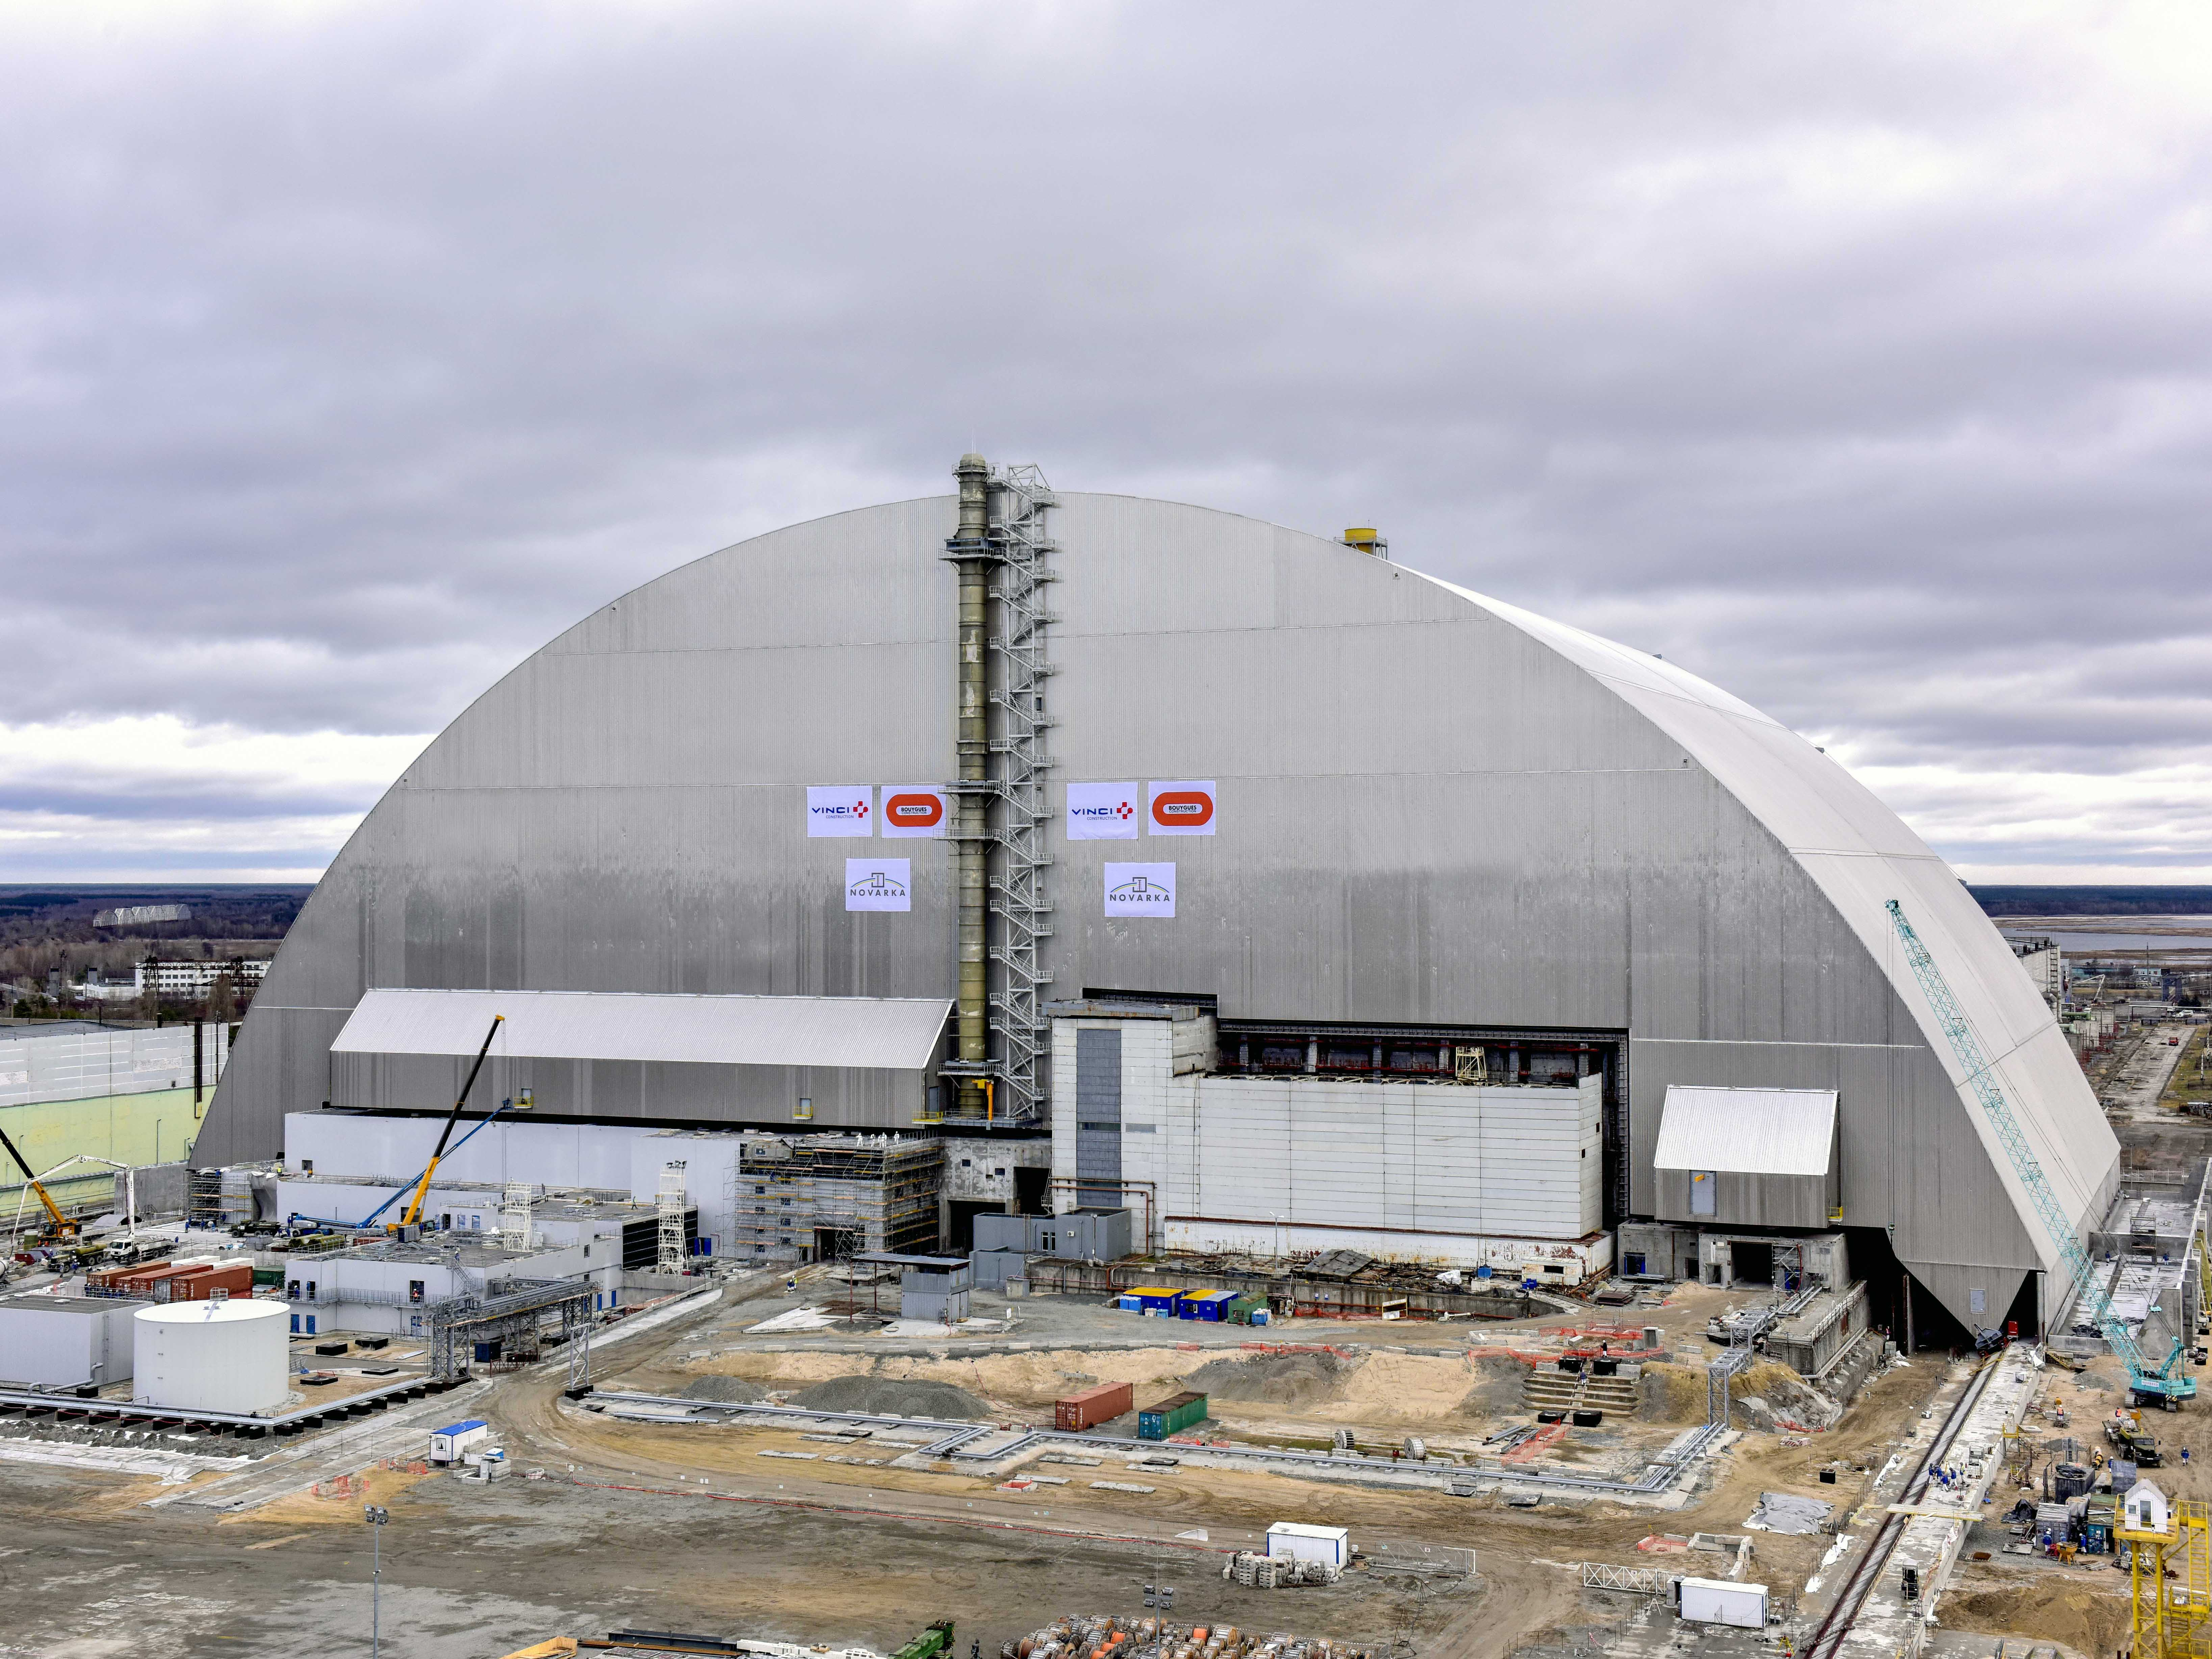 The New Safe Confinement arch now rests above the damaged reactor building, protecting it from the elements and sealing in radioactive contamination. Photo: European Bank for Reconstruction and Development